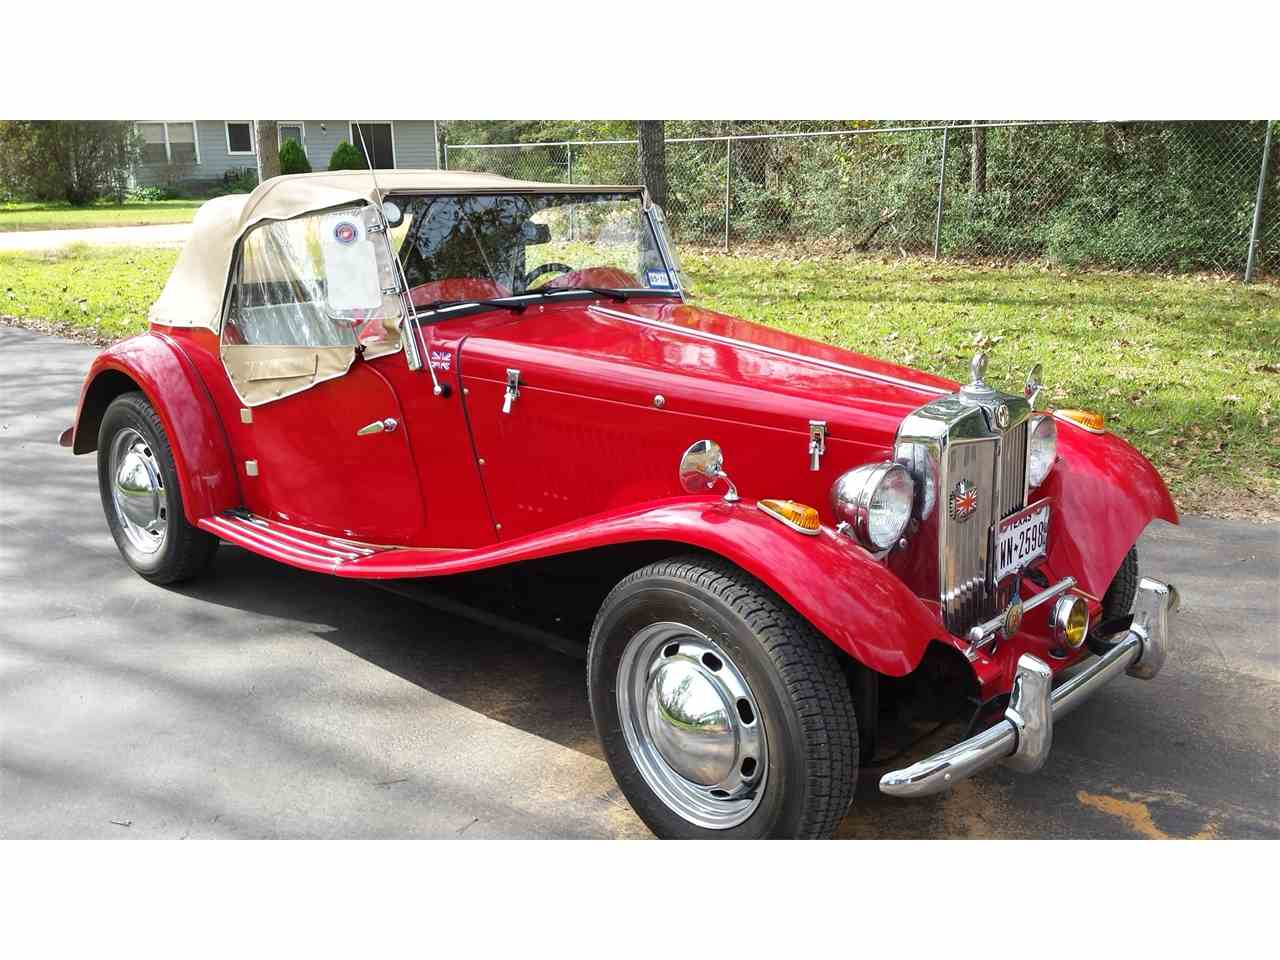 Large Picture of '52 MG TD - $9,999.00 Offered by a Private Seller - IR3X